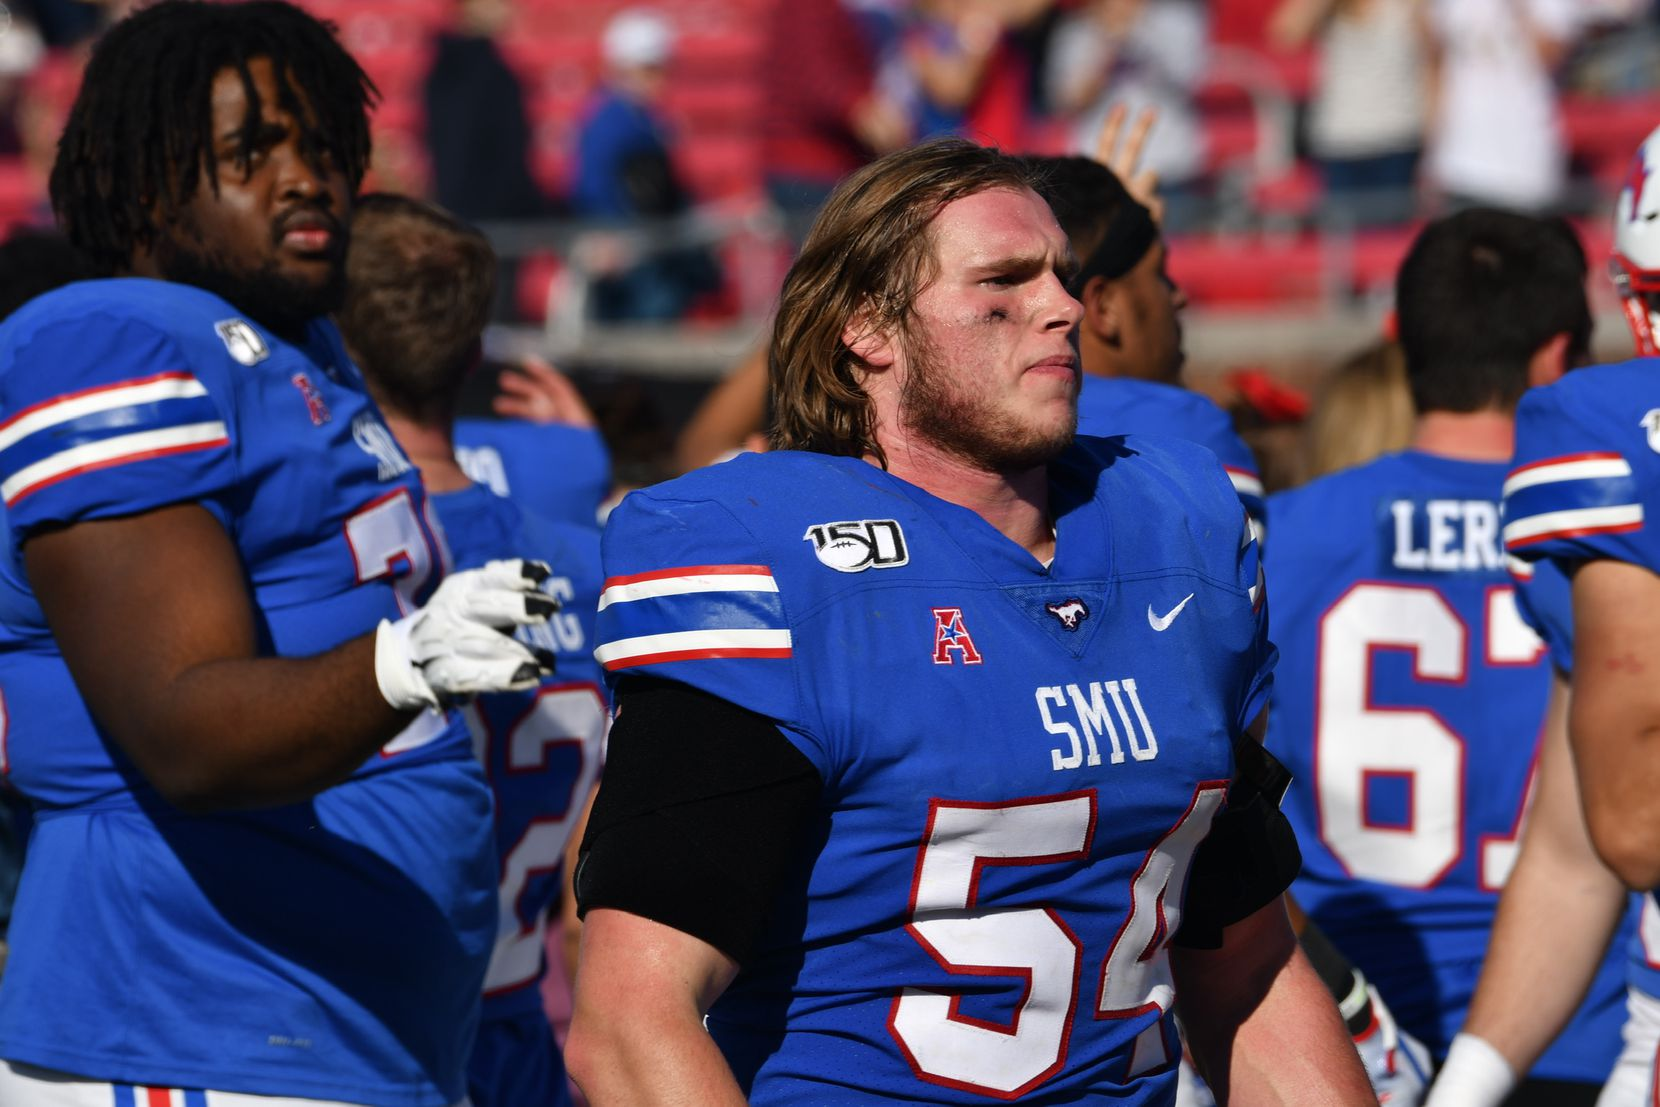 Gerrit Choate looks on during an SMU football game.